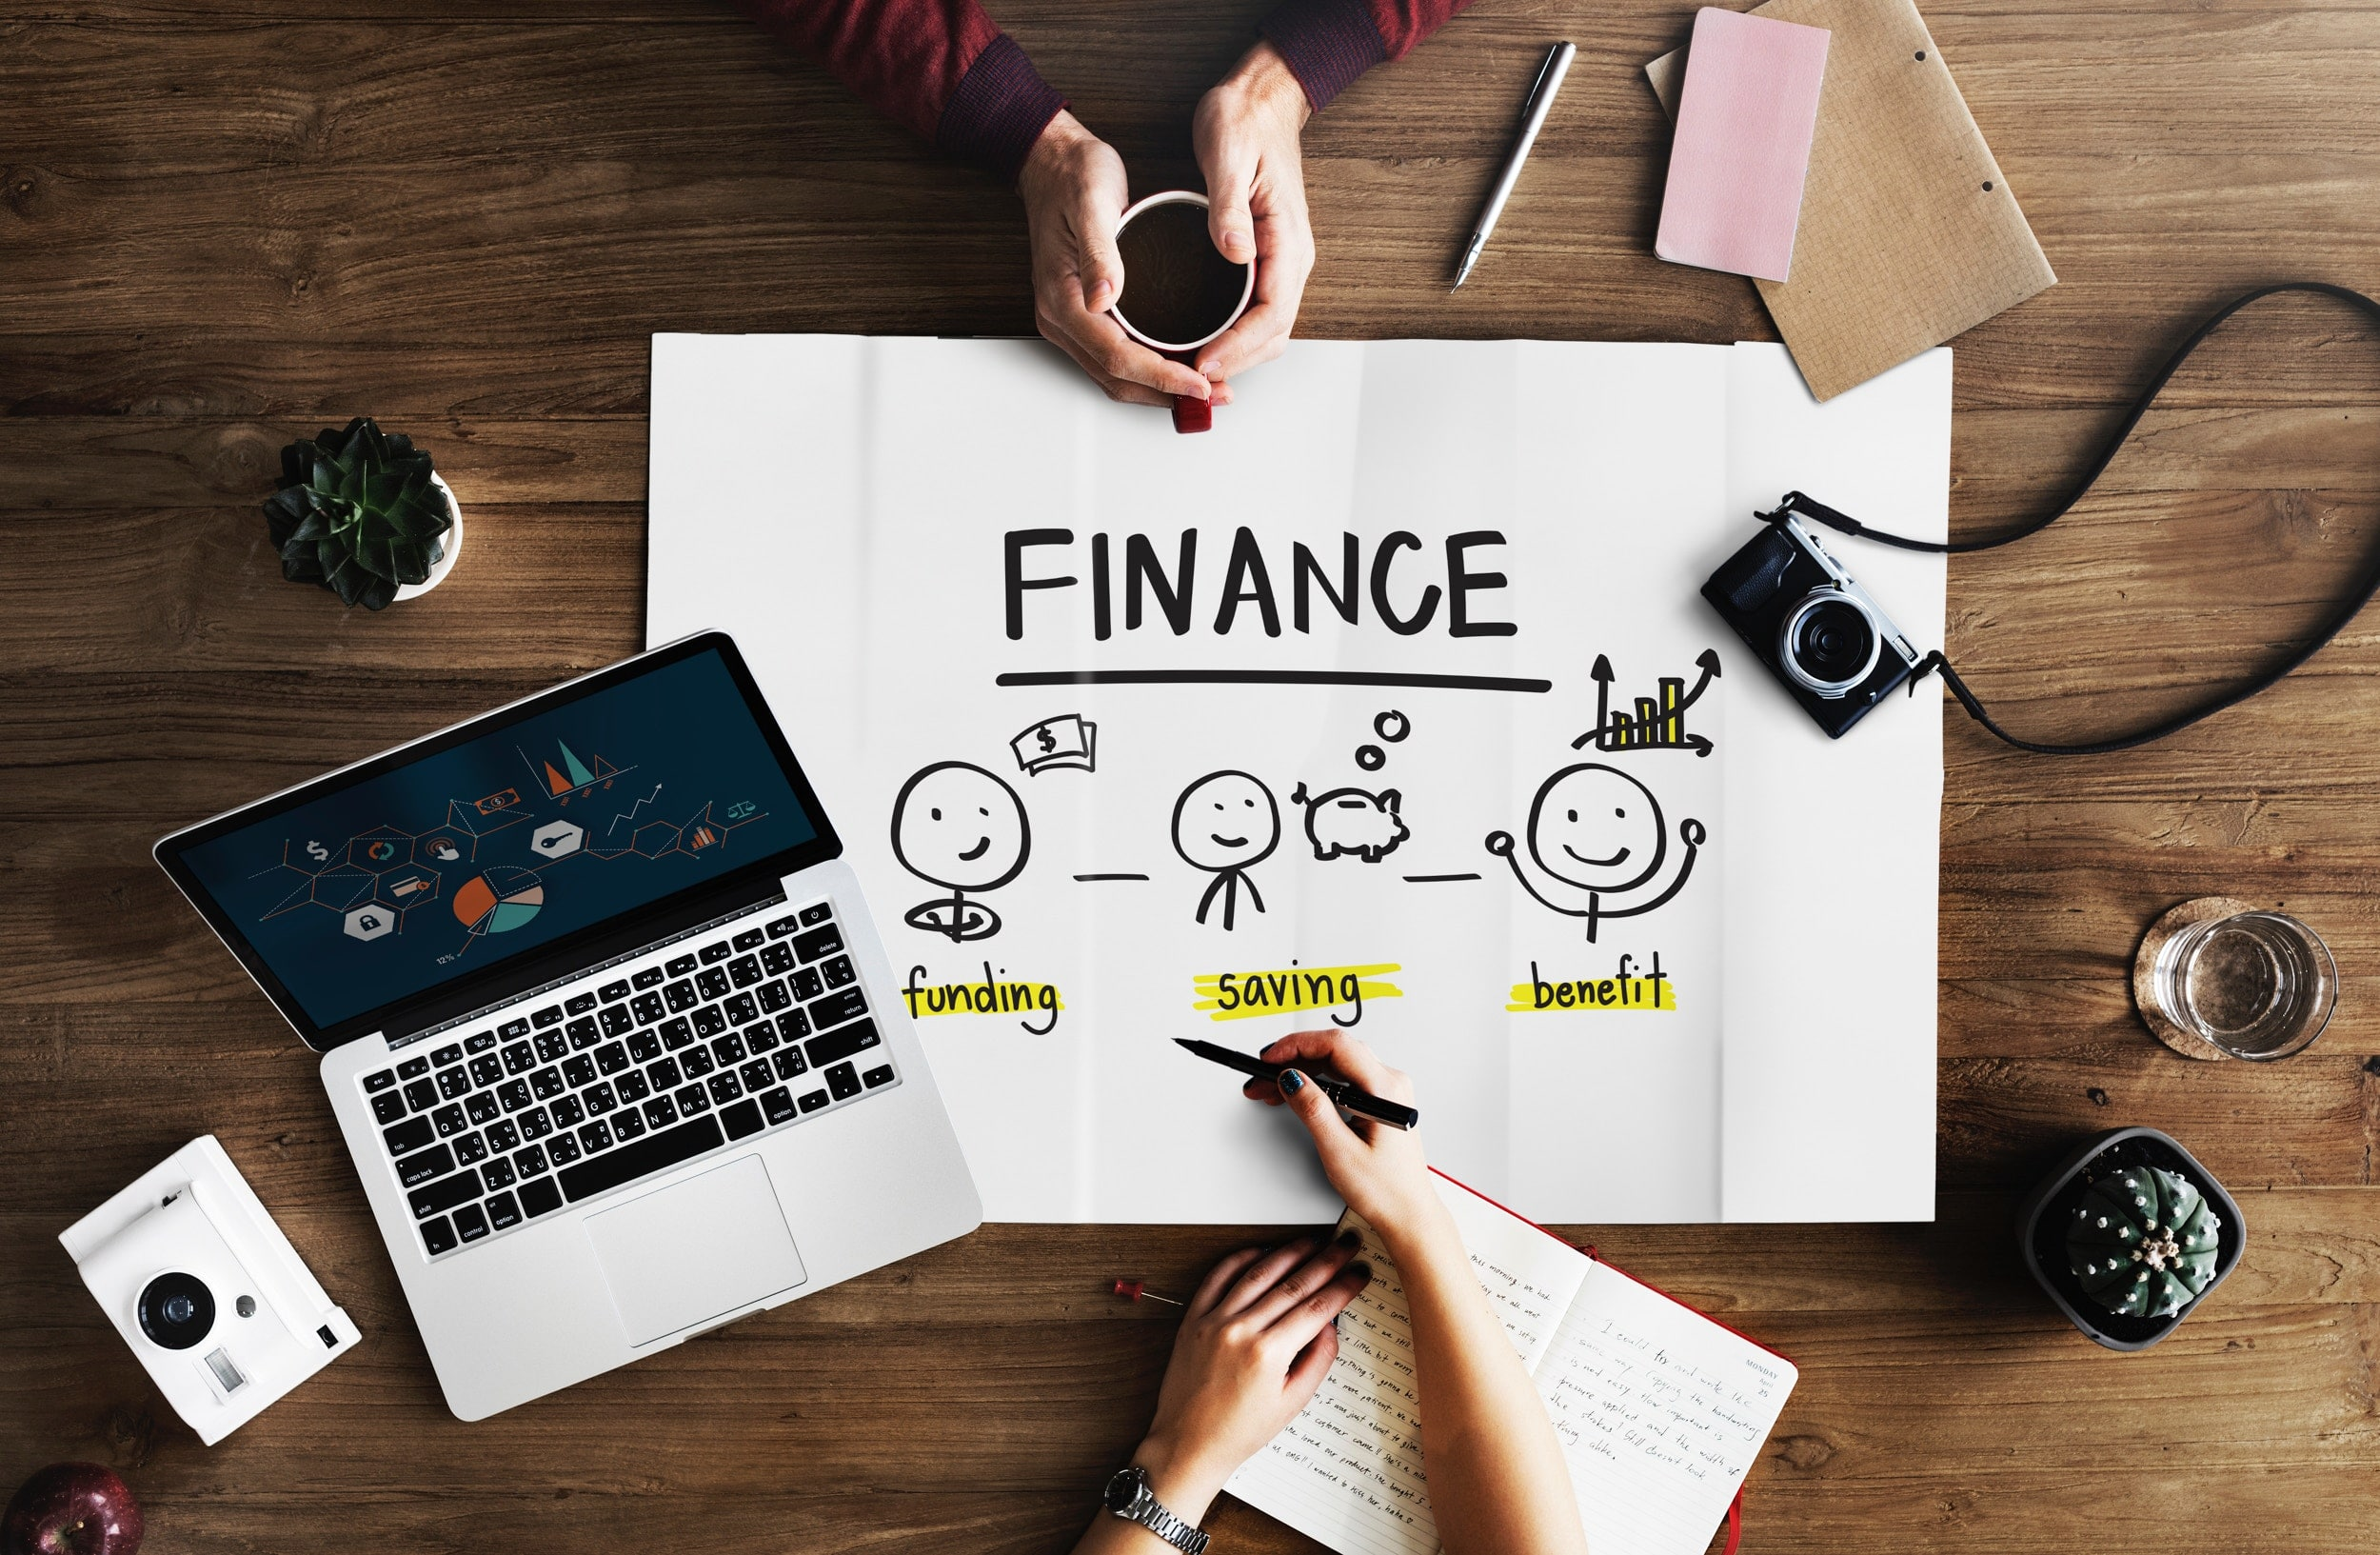 101 Best Personal Finance Blogs for 20, 30 and 40 somethings